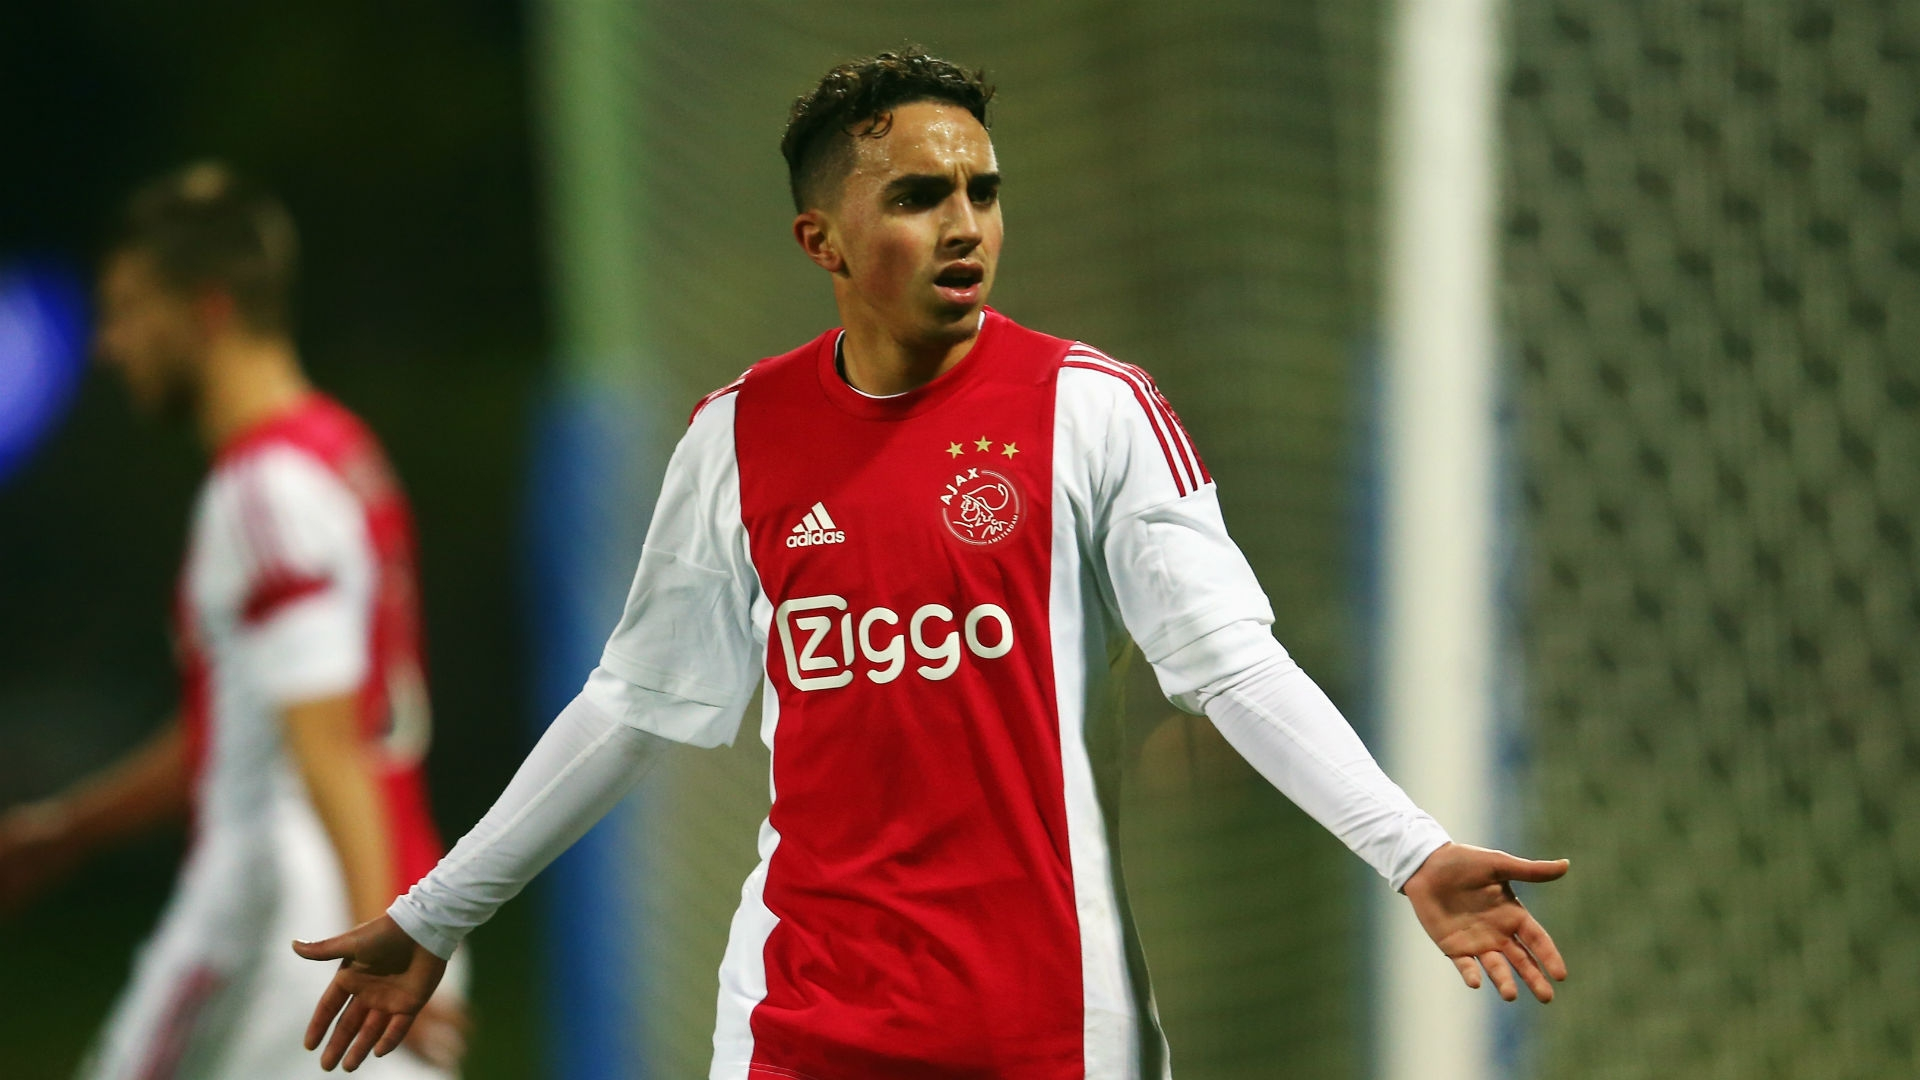 The midfielder had made his debut for Ajax this season, starting alongside a group of other young players that had made their way through the Europa League final.